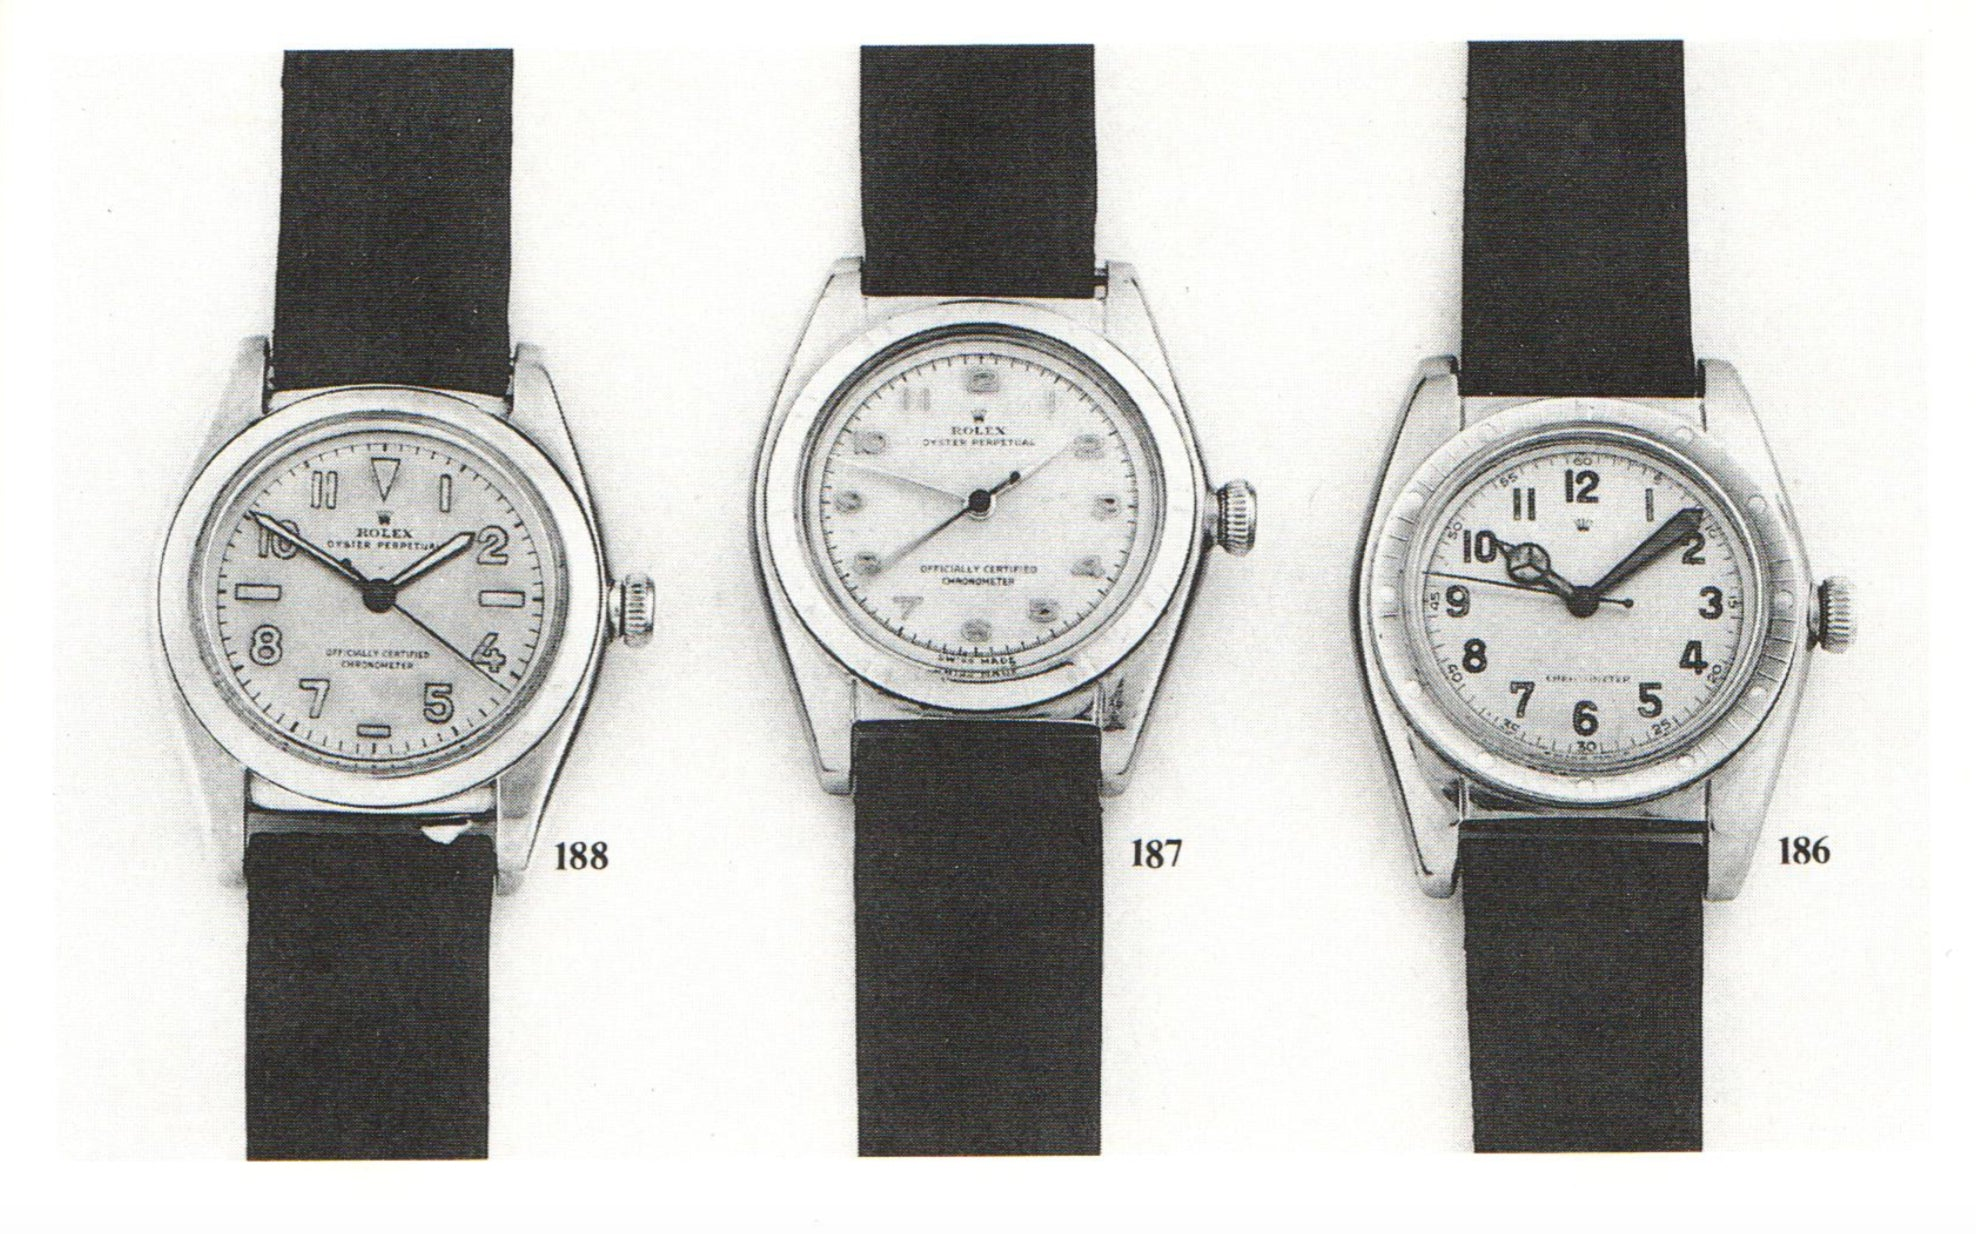 Line up of Bubblebacks from Crott auction catalogue in The Early Days of Vintage Wristwatch Collecting for A Collected Man London